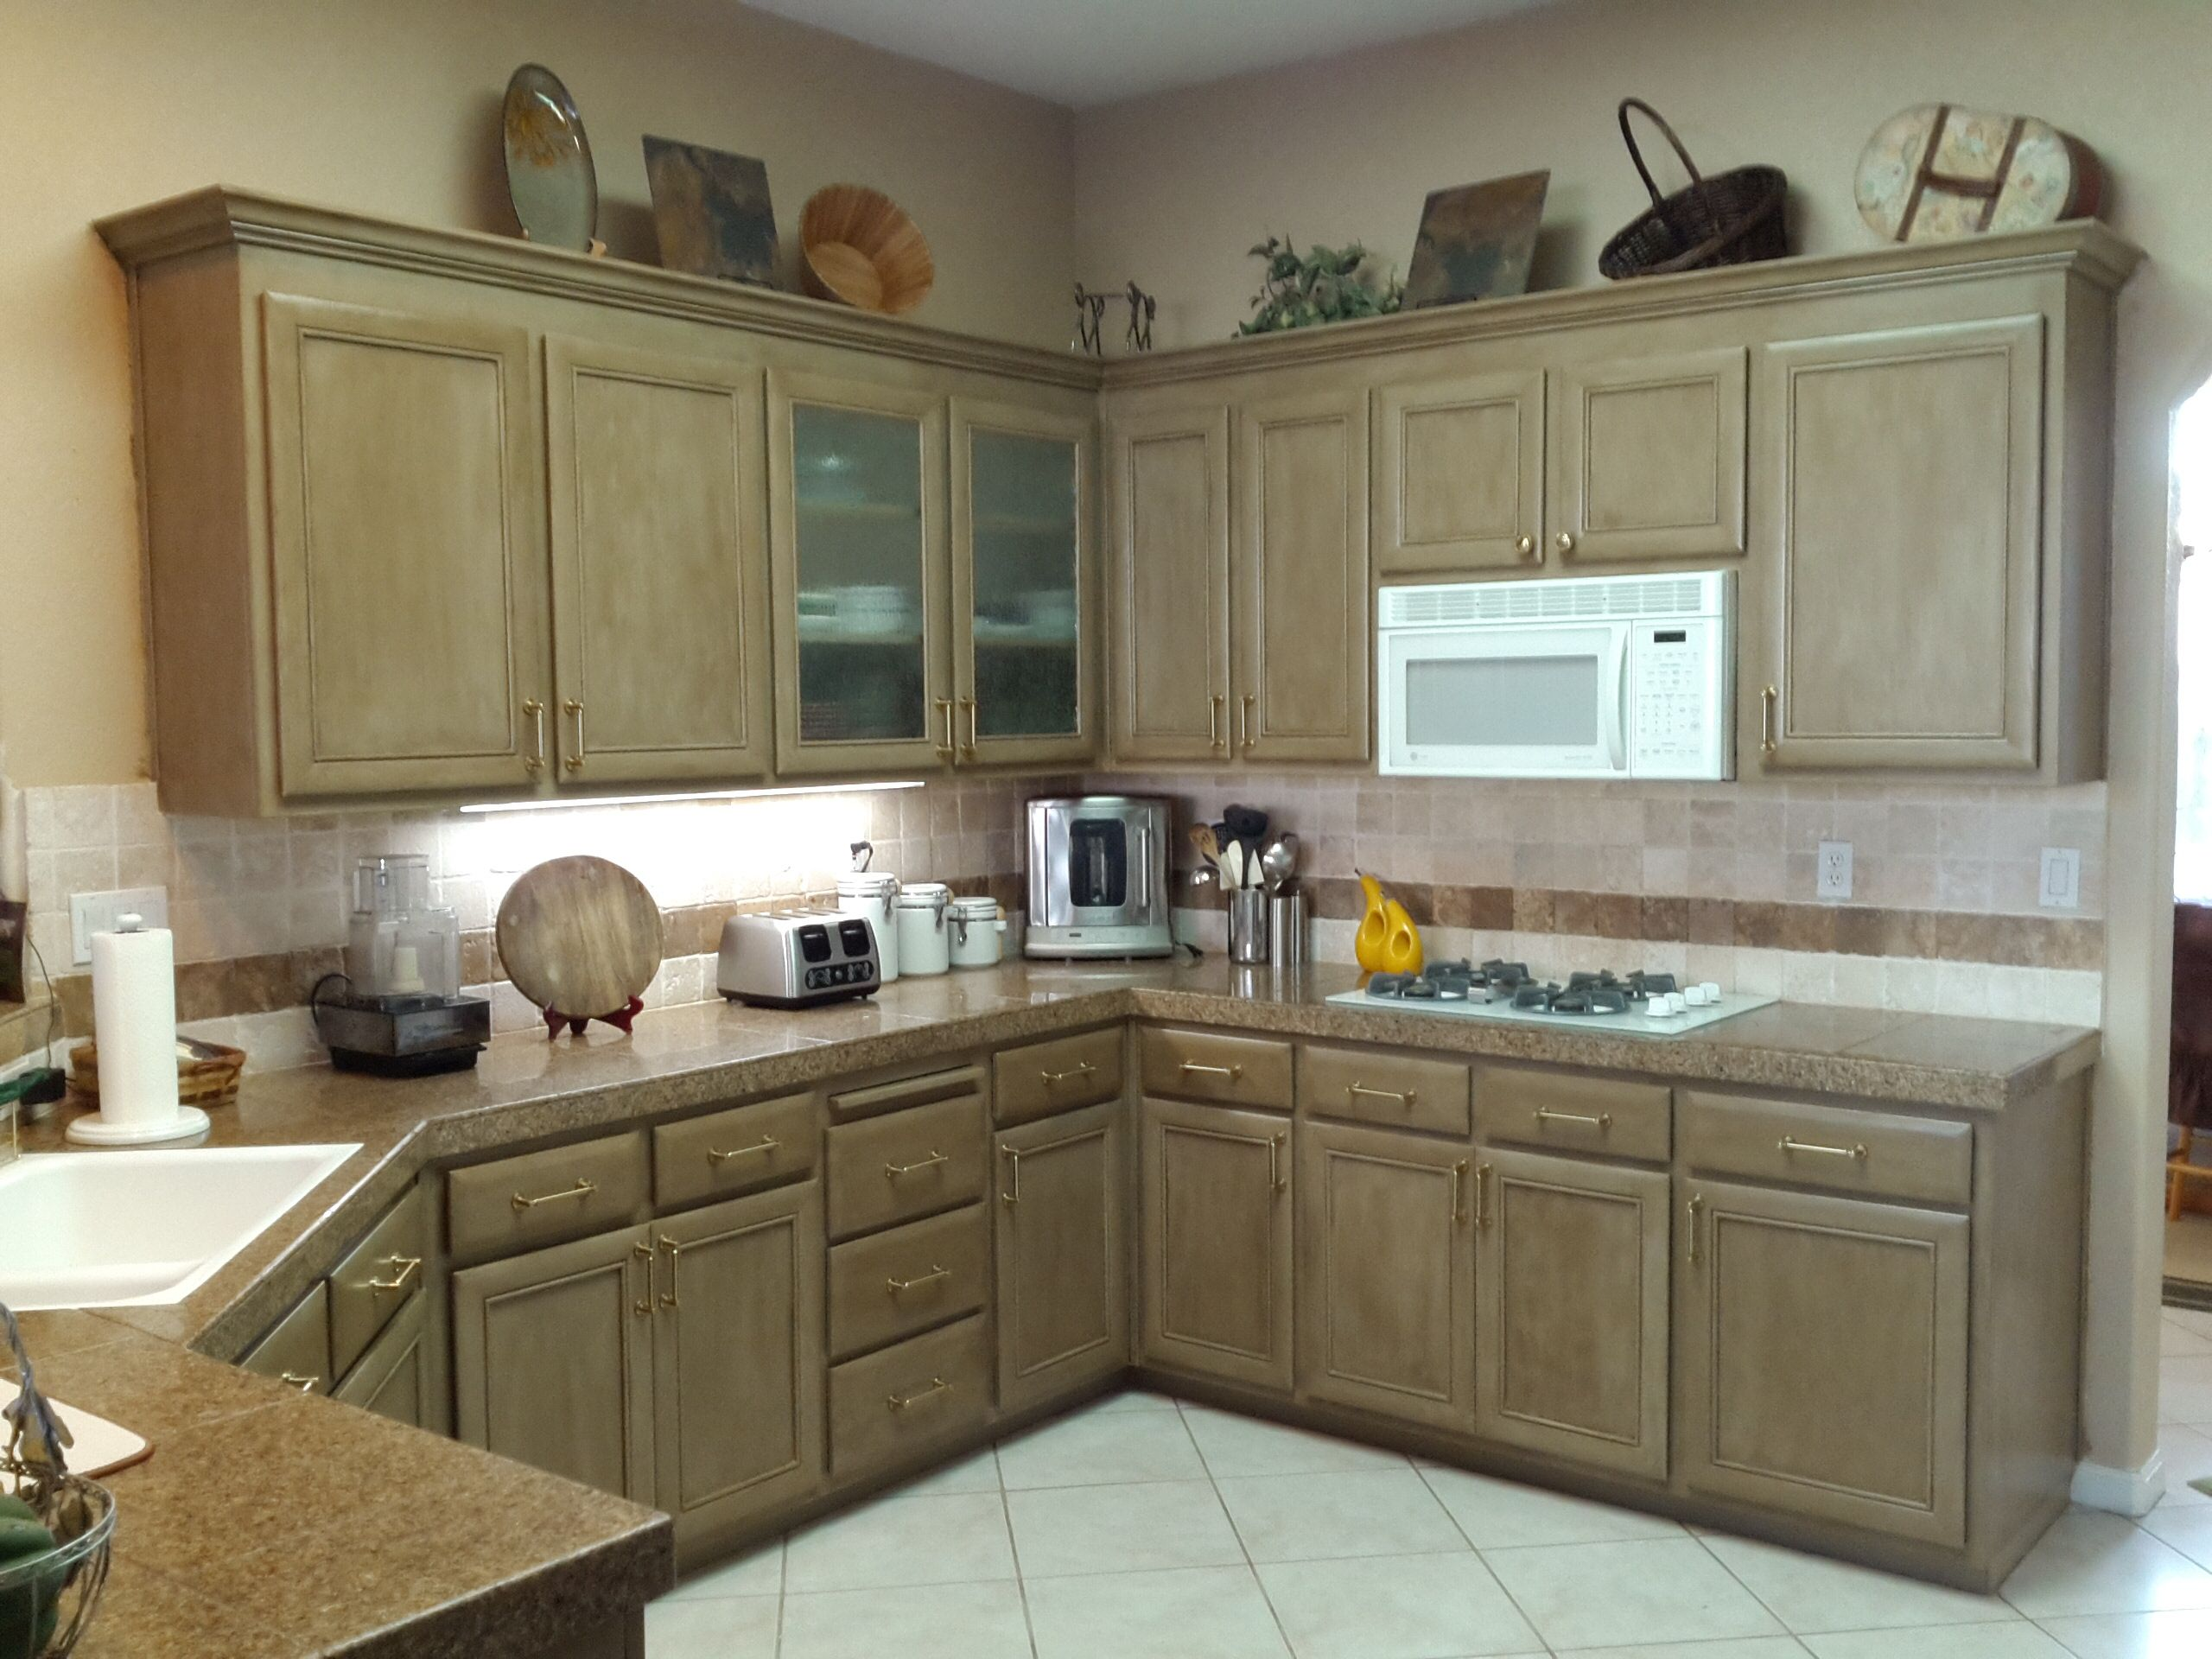 painting kitchen cabinets with rustoleum testimonial gallery rust oleum cabinet transformations 24488